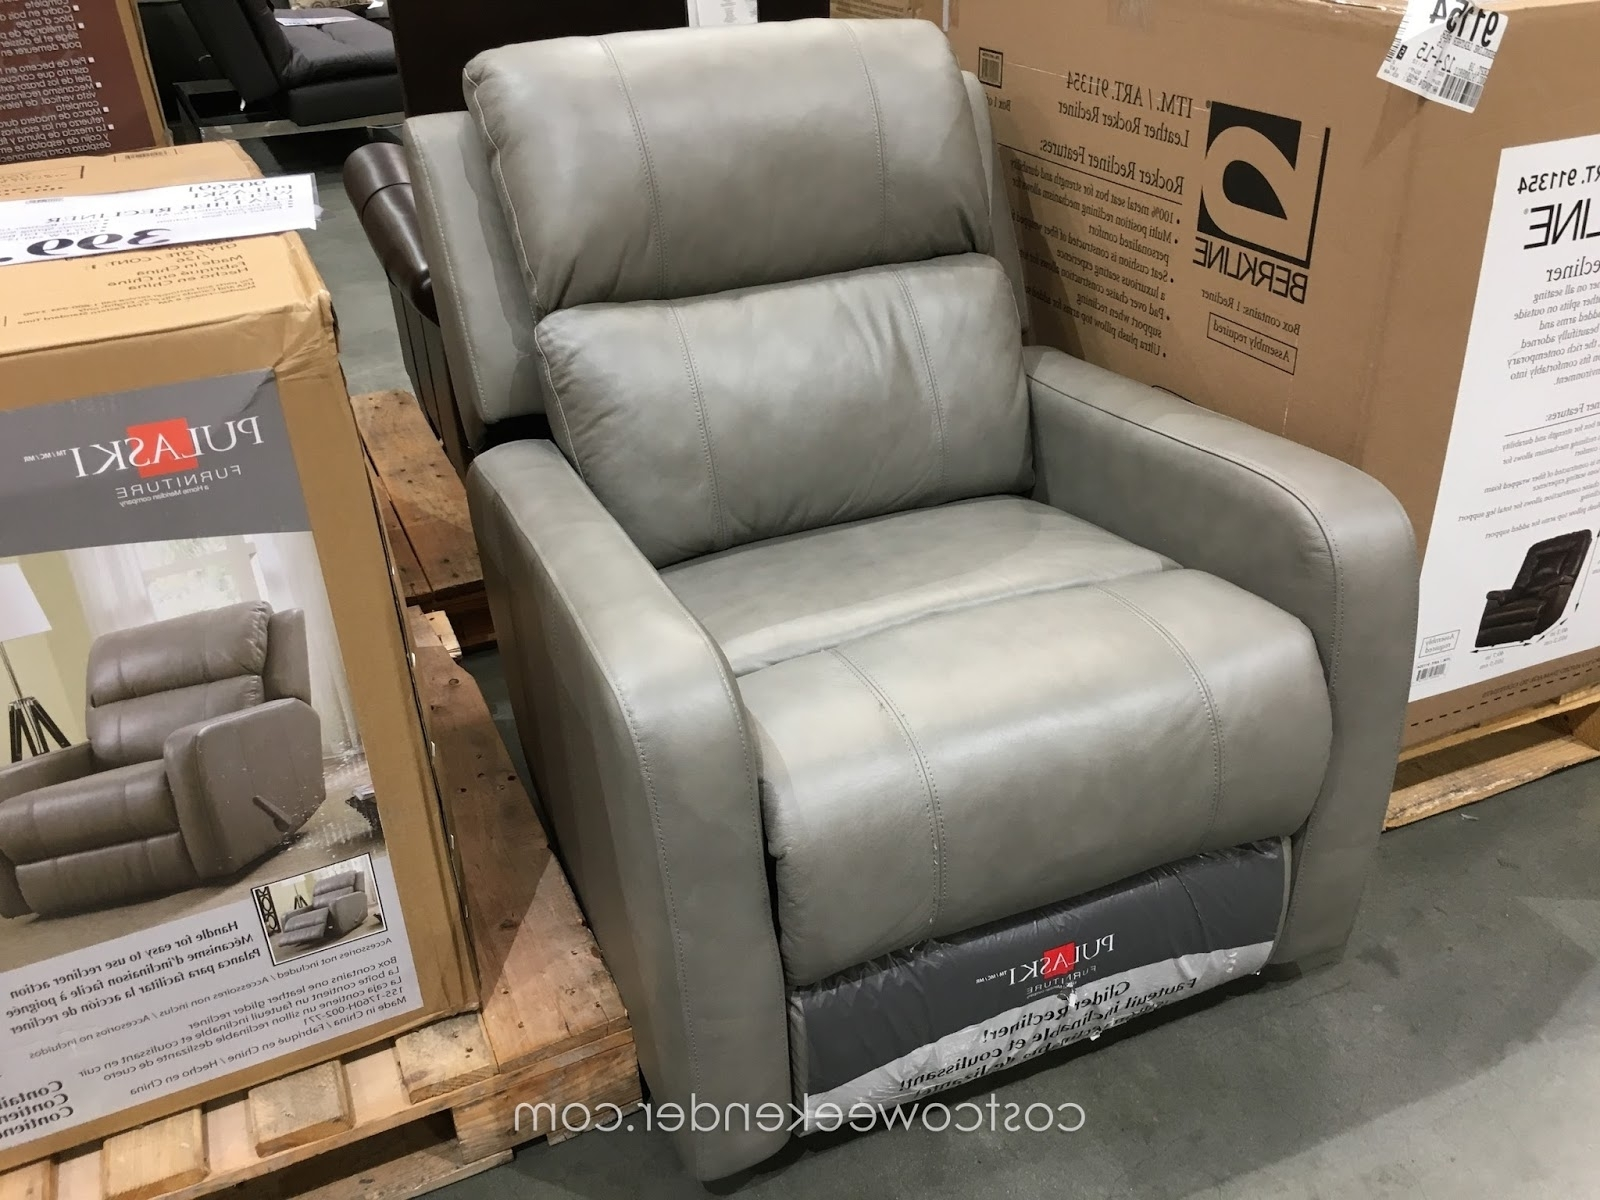 Latest Chair : Beach Chairs Costco Camping Tommy Bahama Chair Outdoor Intended For Rocking Chairs At Costco (View 7 of 20)